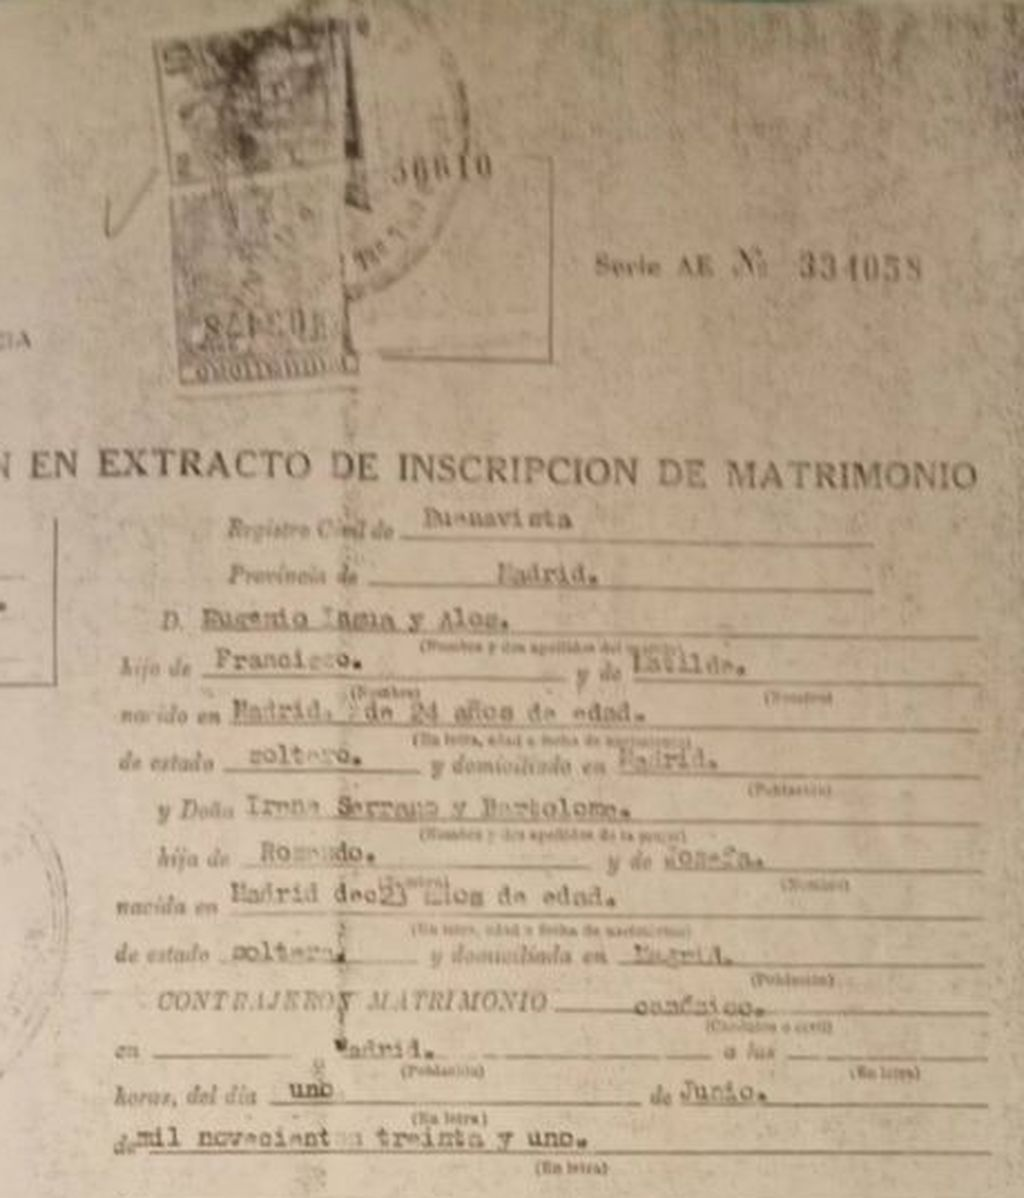 Extracto de la inscripcion de matrimonio